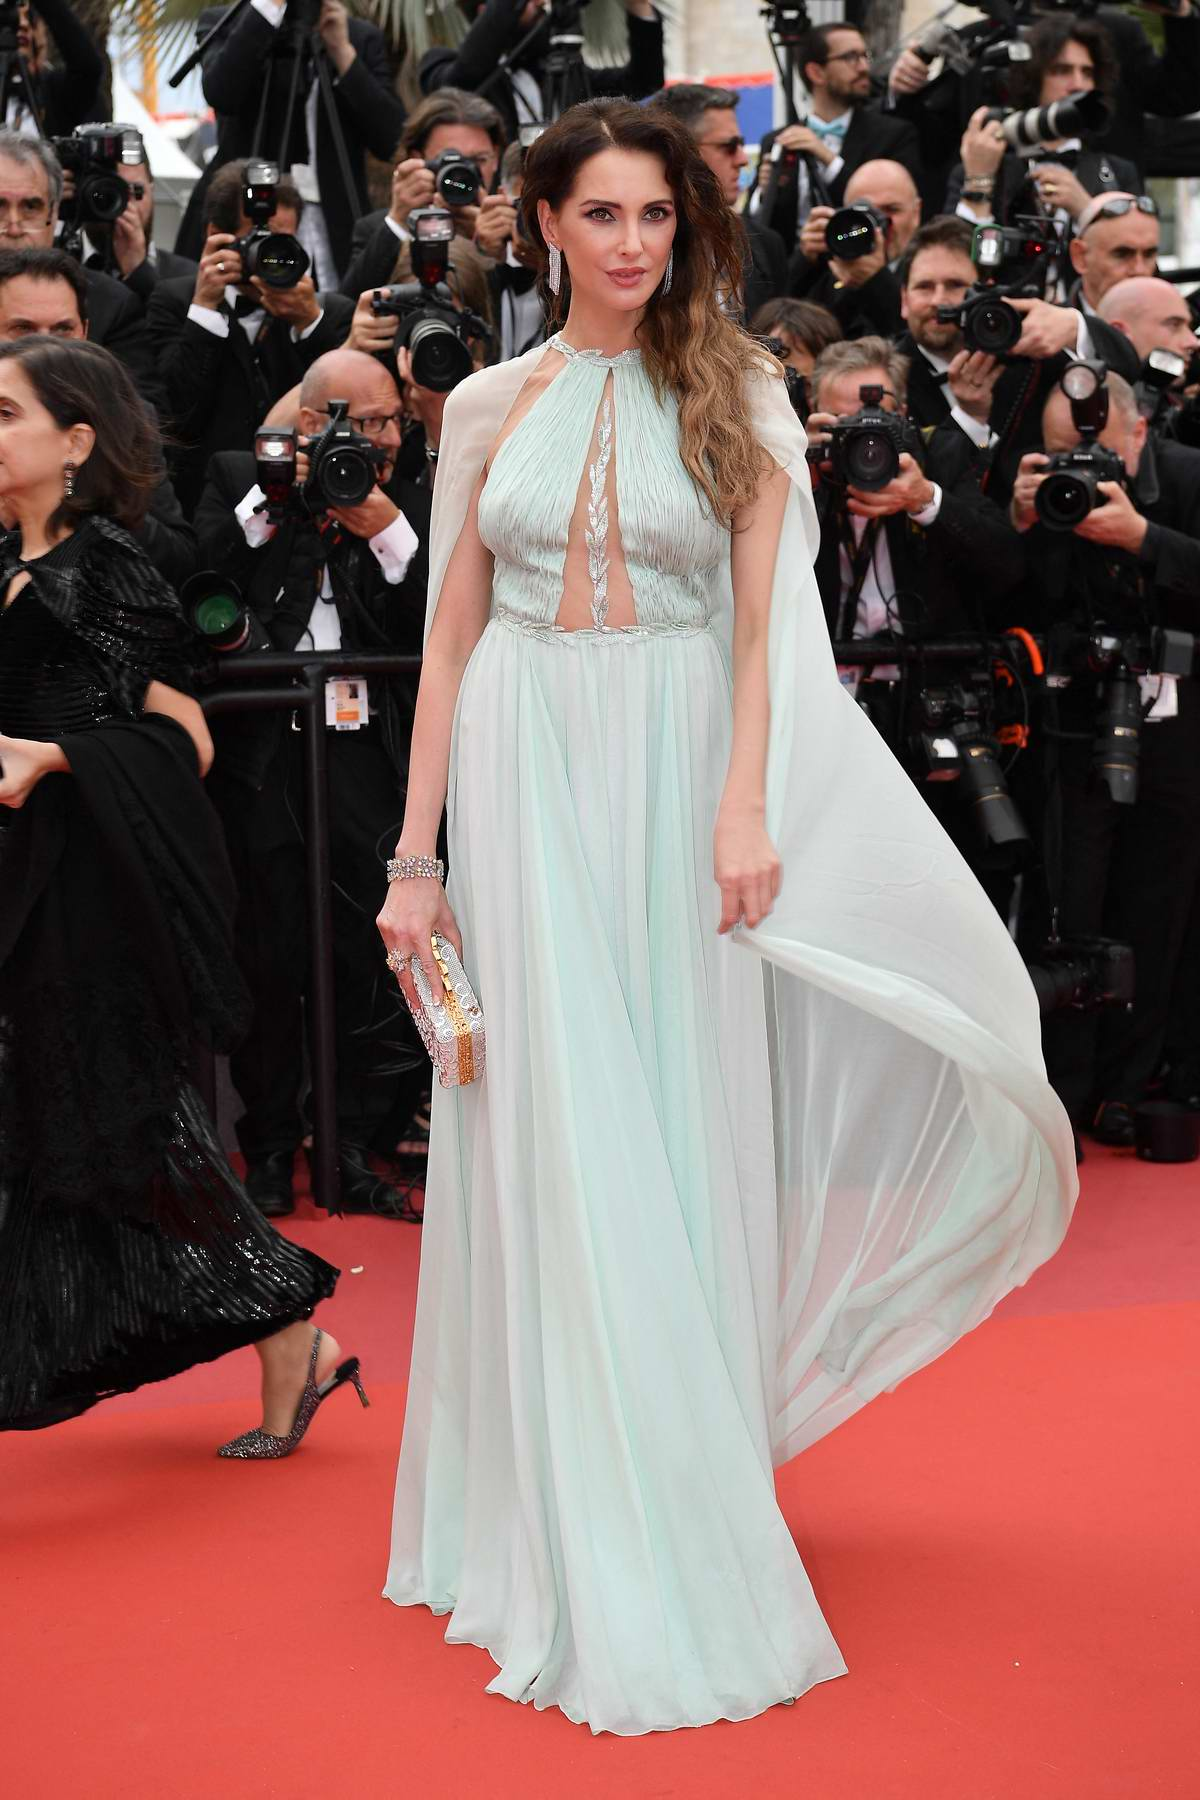 Frederique Bel attends 'The Dead Don't Die' Premiere during The 72nd annual Cannes Film Festival in Cannes, France